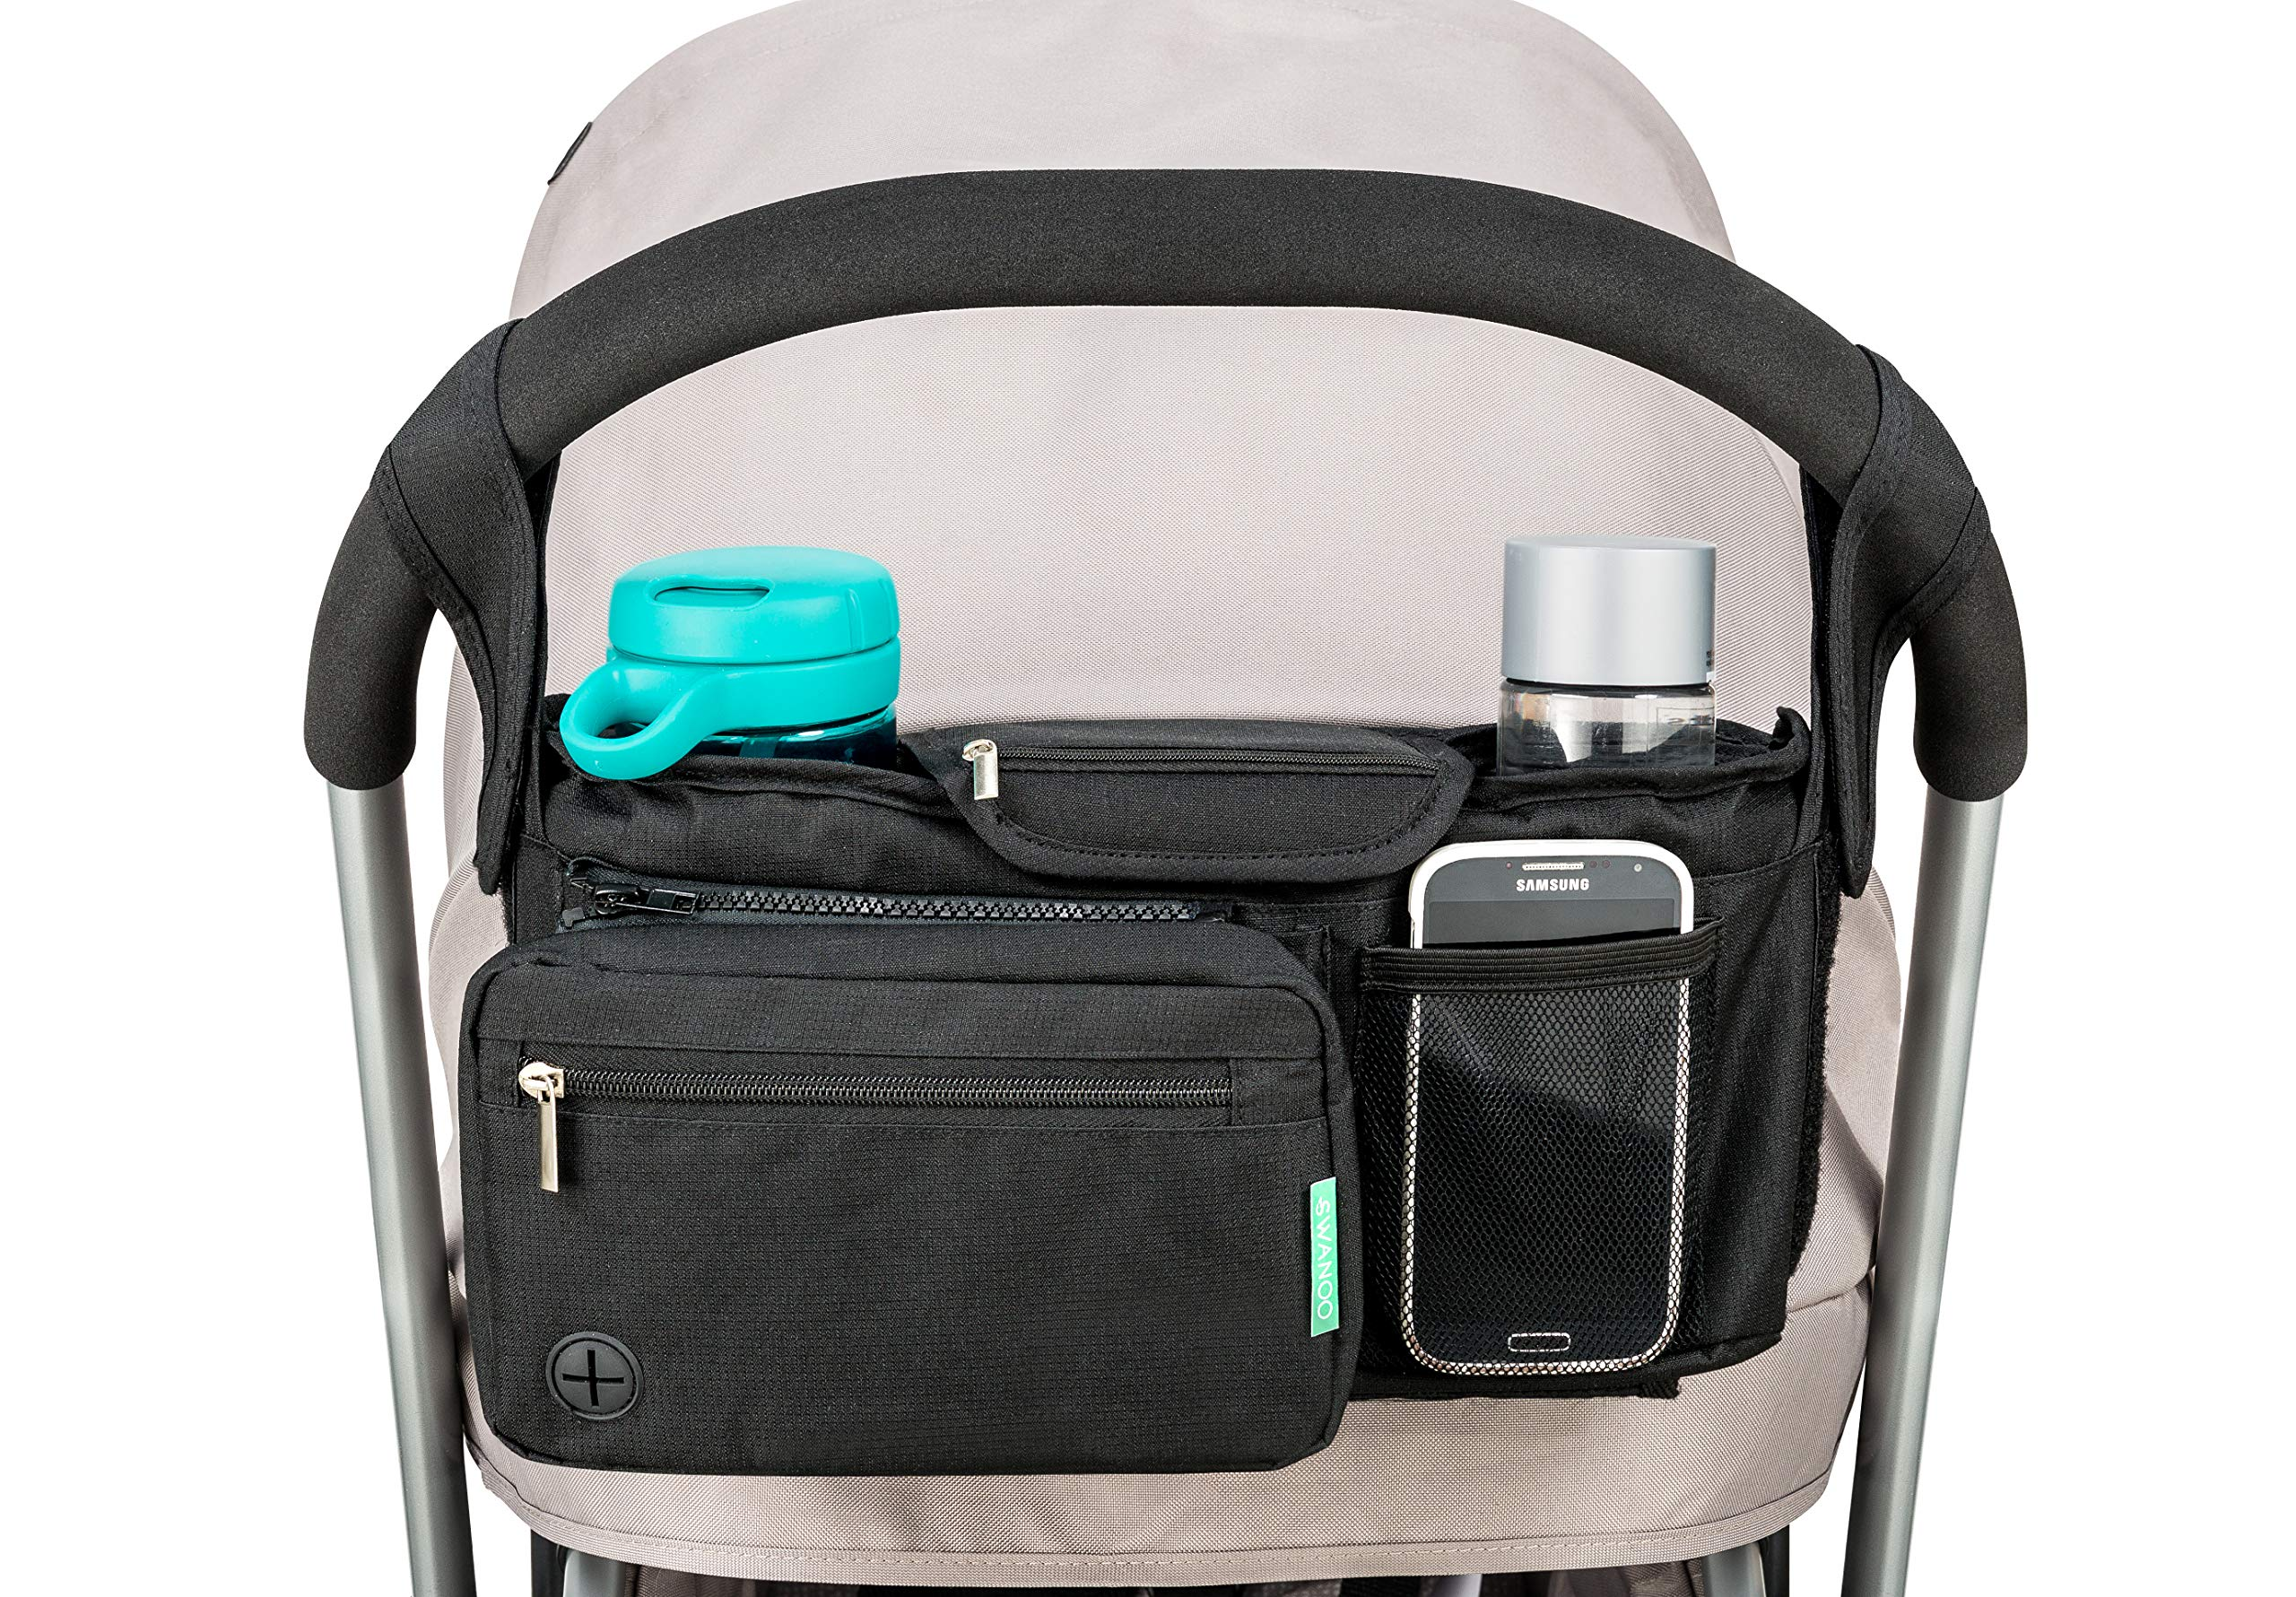 STROLLER ORGANIZER with cup holders NON-SKID strap FITS ALL strollers, Compact Mirror, Storage for Phone, Wallet, Toys, BEST BABY SHOWER GIFT! by SWANOO best stroller caddy! by Swanoo (Image #7)